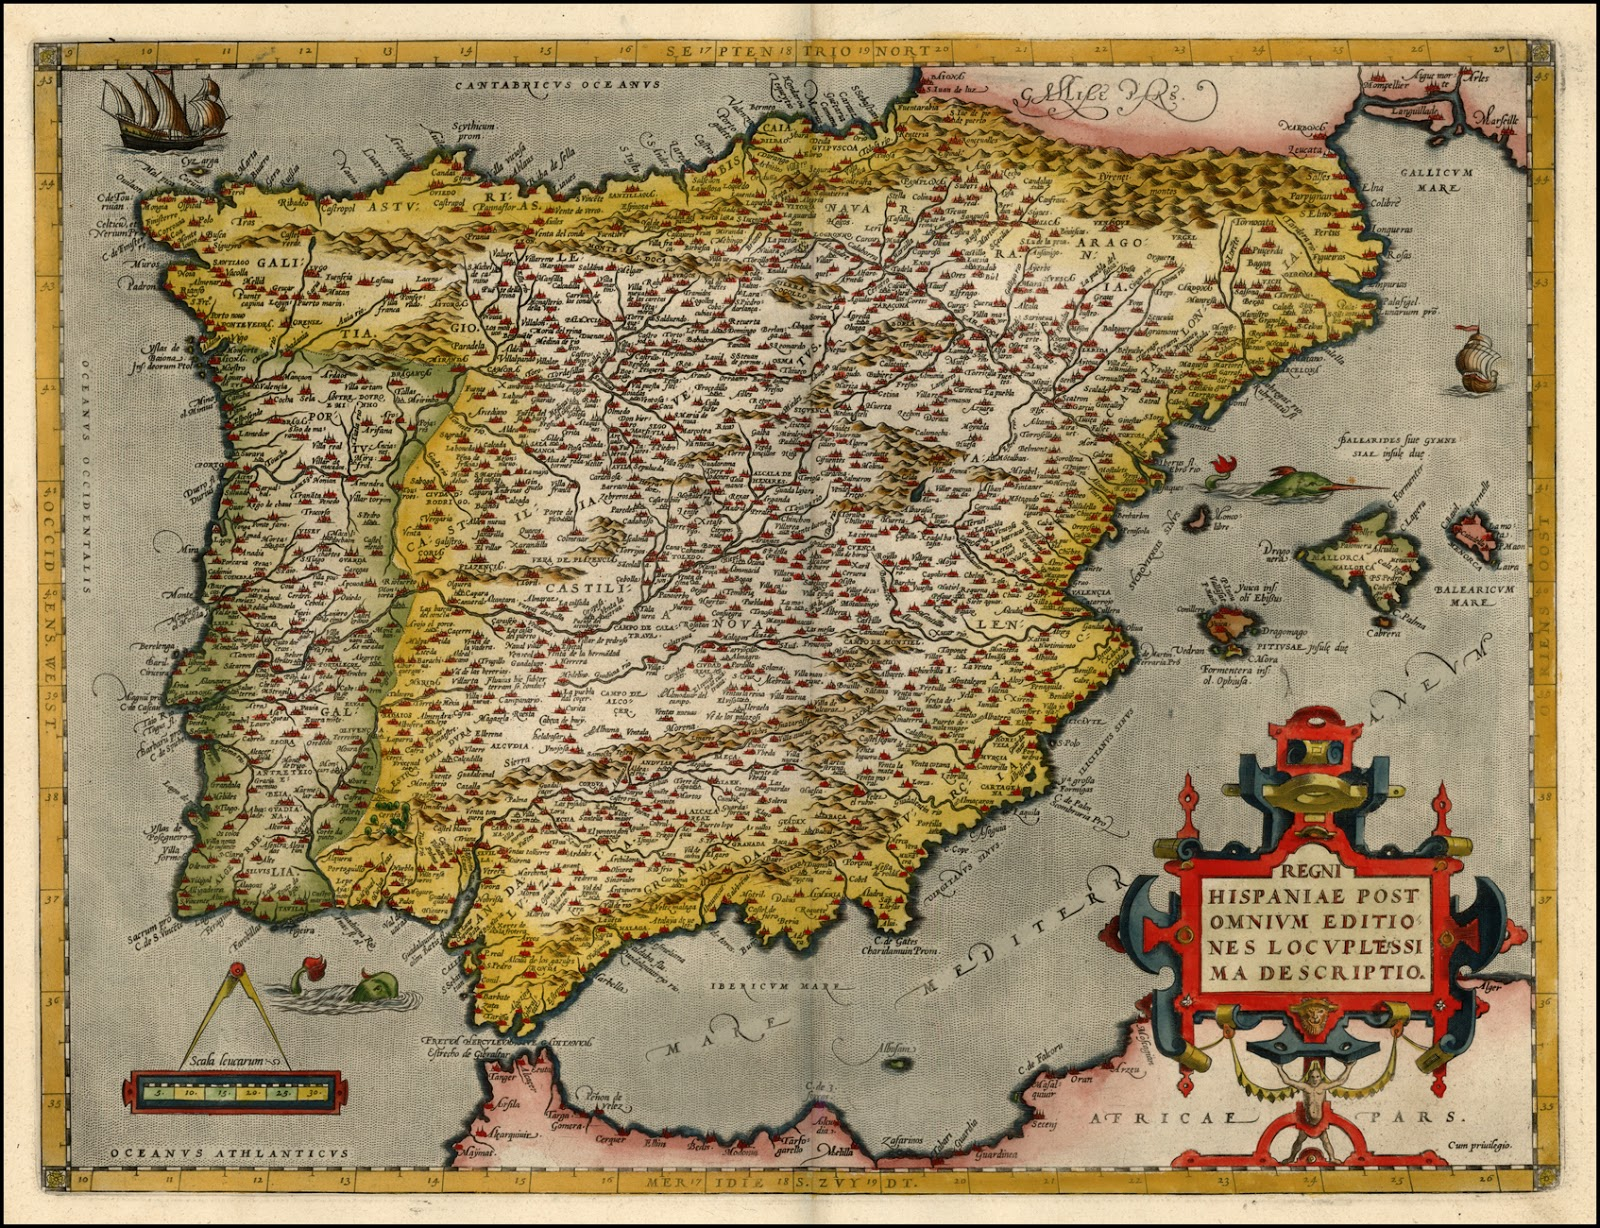 Antique Prints Blog  Historic Maps of Spain     Spain grew wealthier   from the richest pouring in from the Americas   and  European cartographers began to produce better and better maps